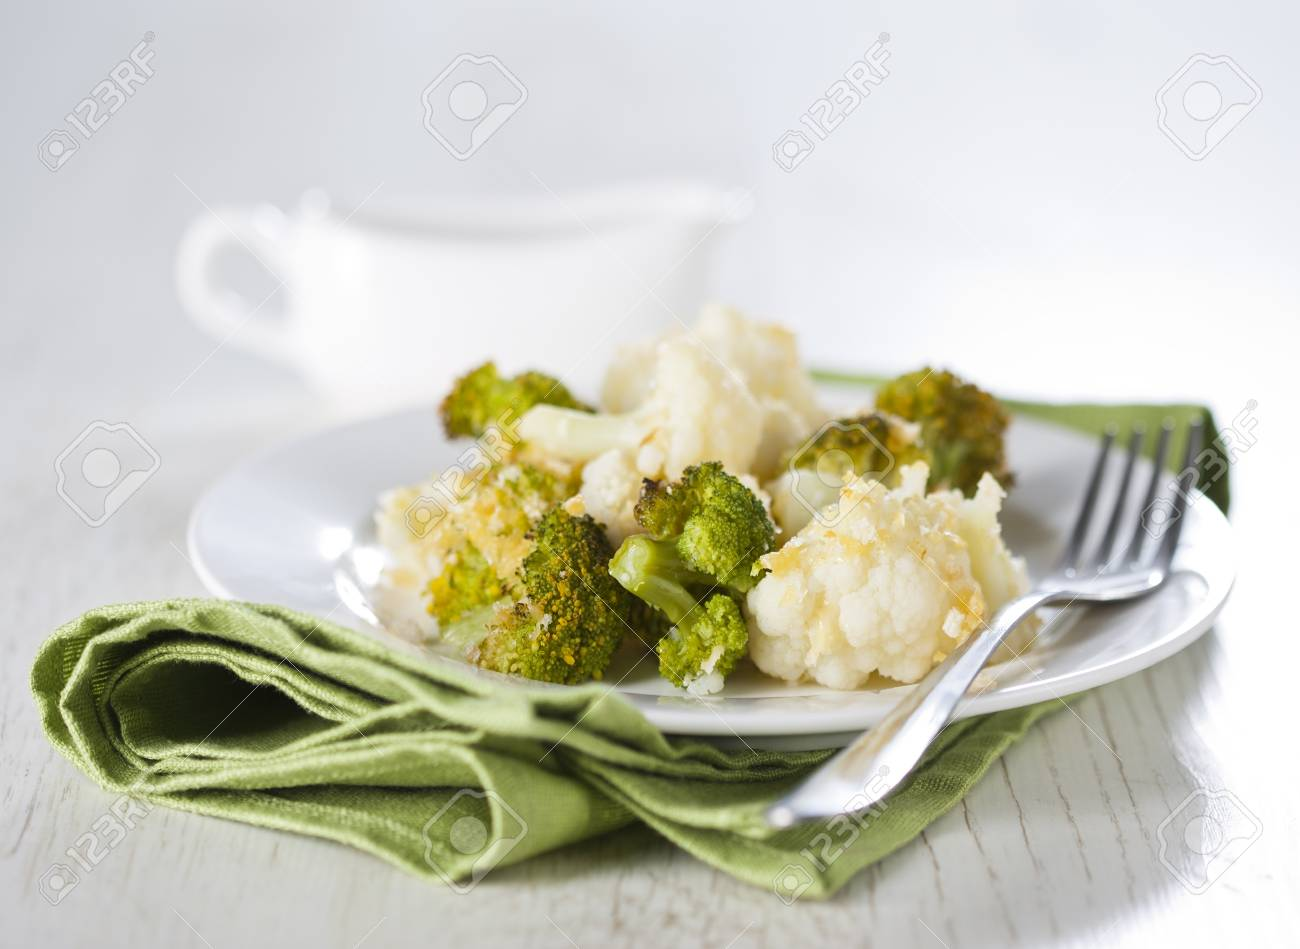 Broccoli and cauliflower gratin with cheese Stock Photo - 17925504